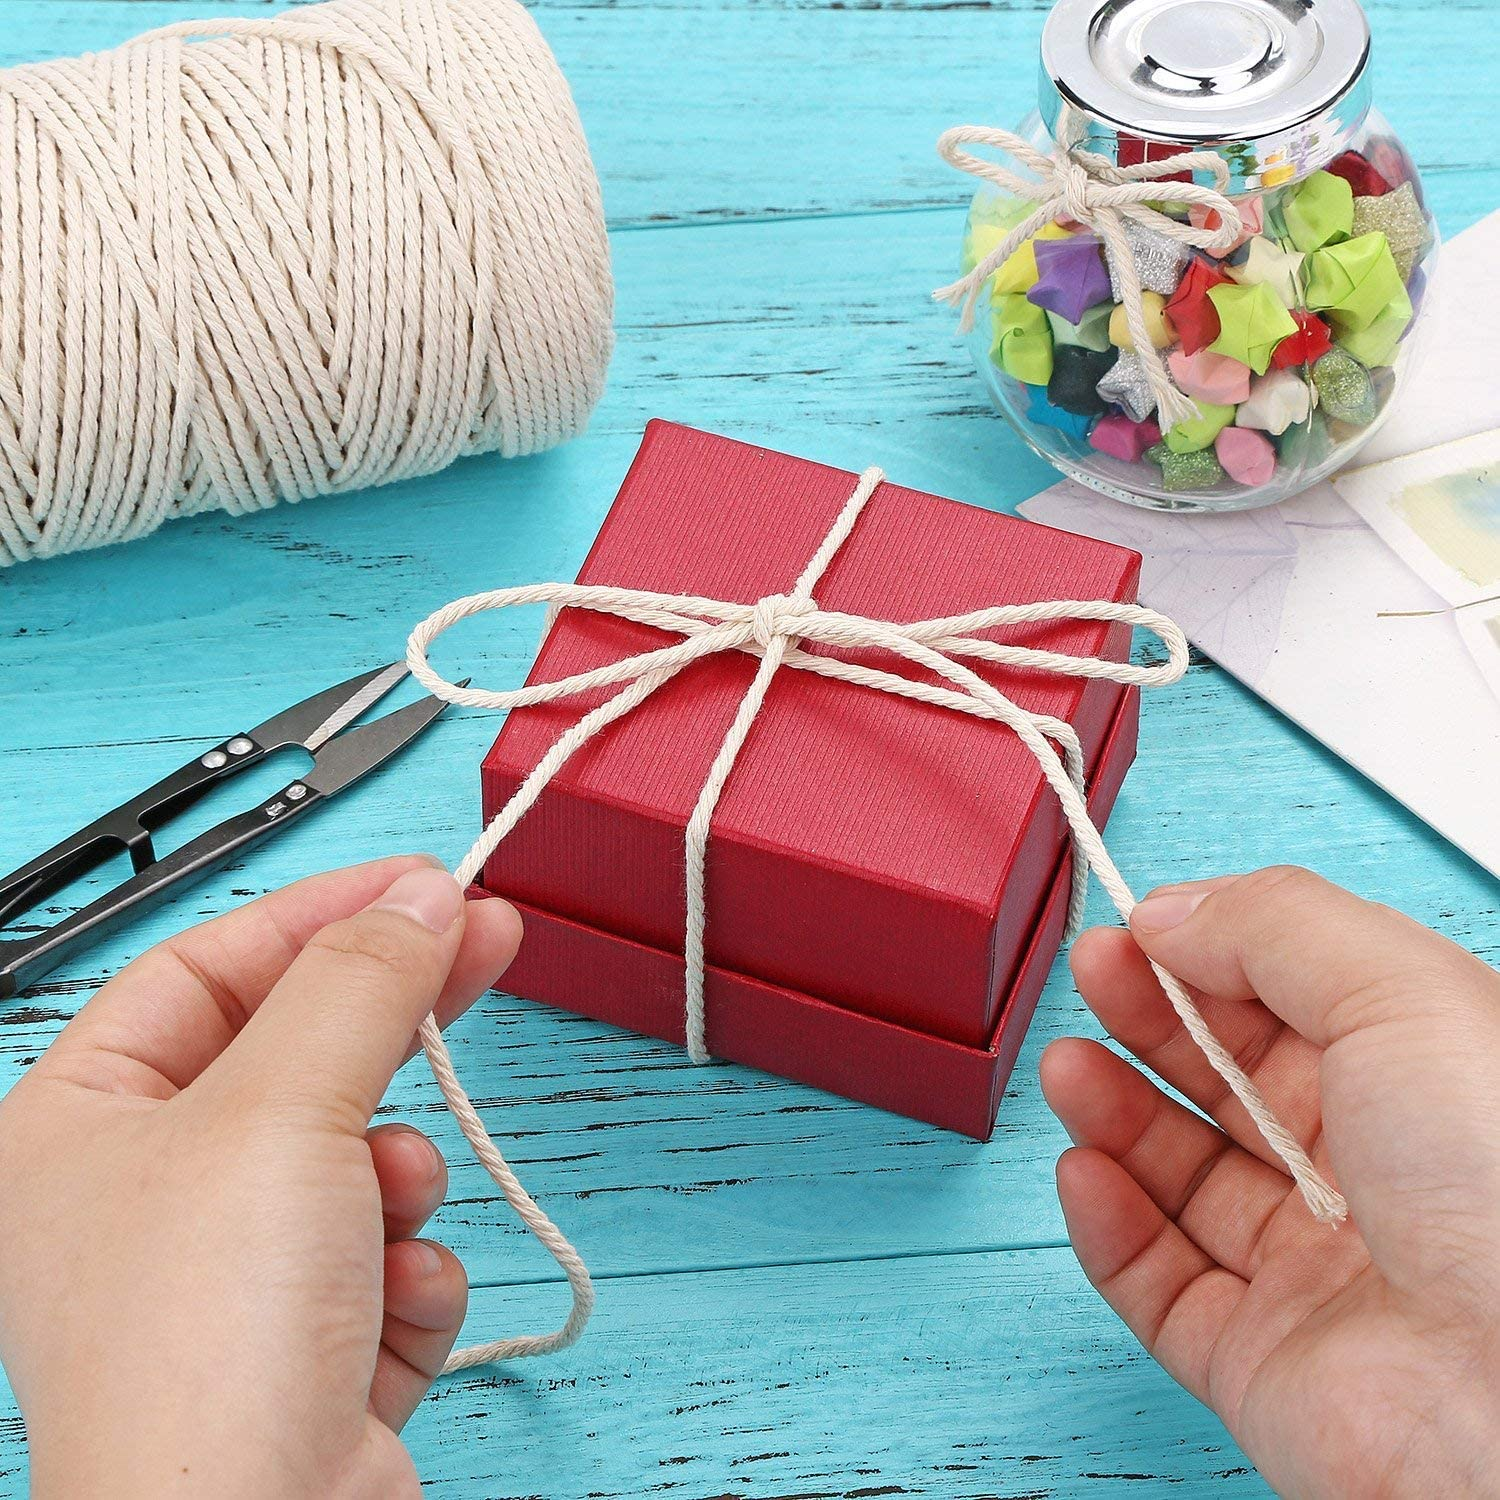 TsingYiStar 1MM x 657 Feet Cotton Rope Macrame Cord for Crafts Jewelry Making Home Decoration Gift Wrapping